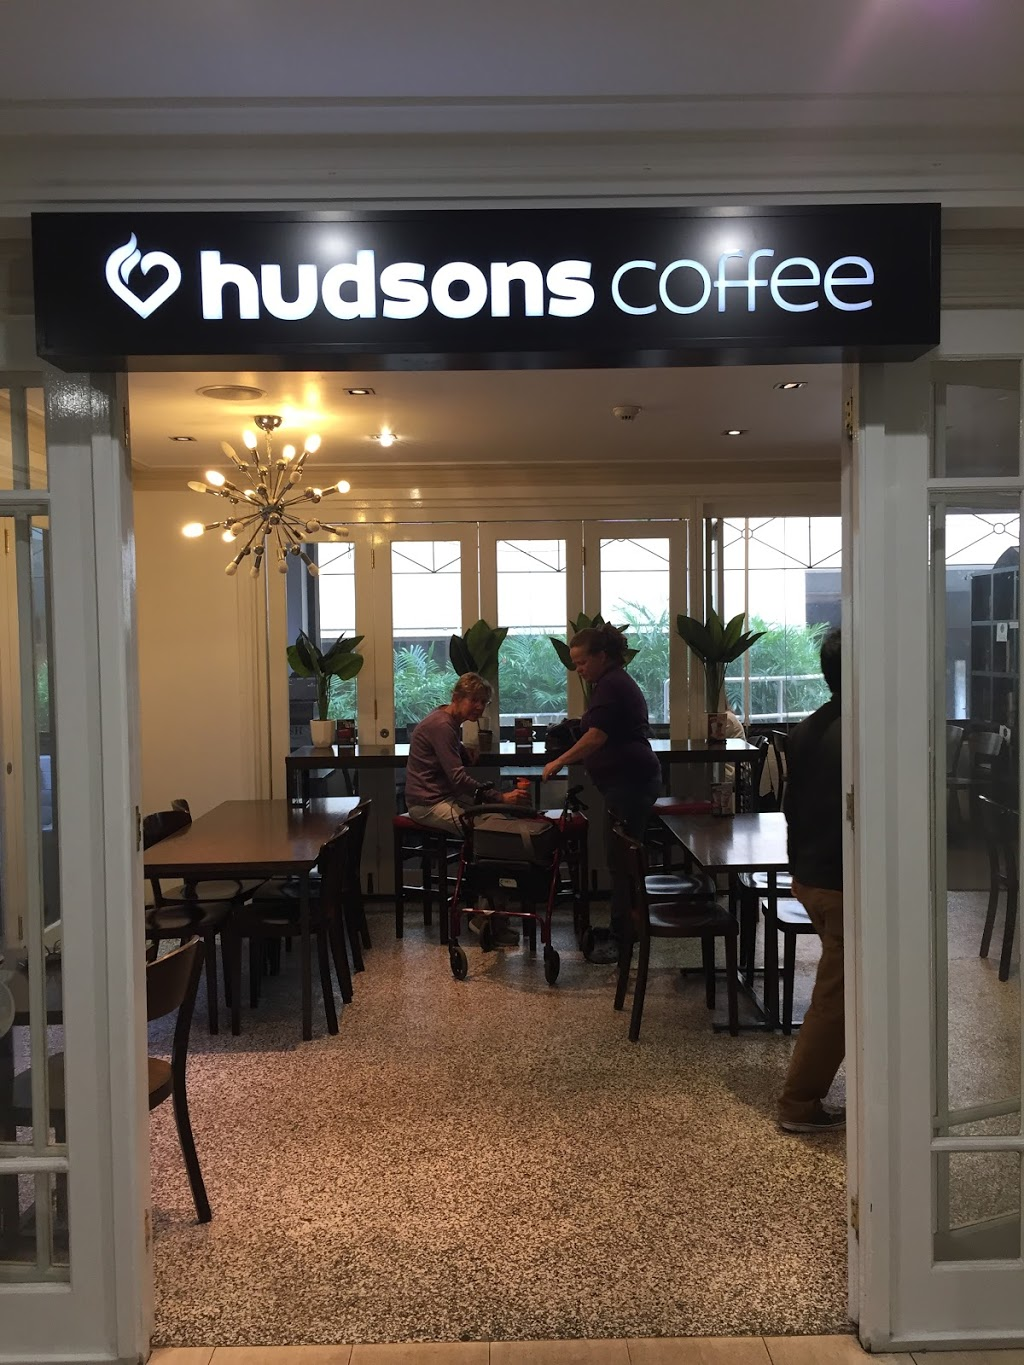 Hudsons Coffee | cafe | Mount Private Hospital, 150 Mounts Bay Rd, Perth WA 6000, Australia | 0892263423 OR +61 8 9226 3423